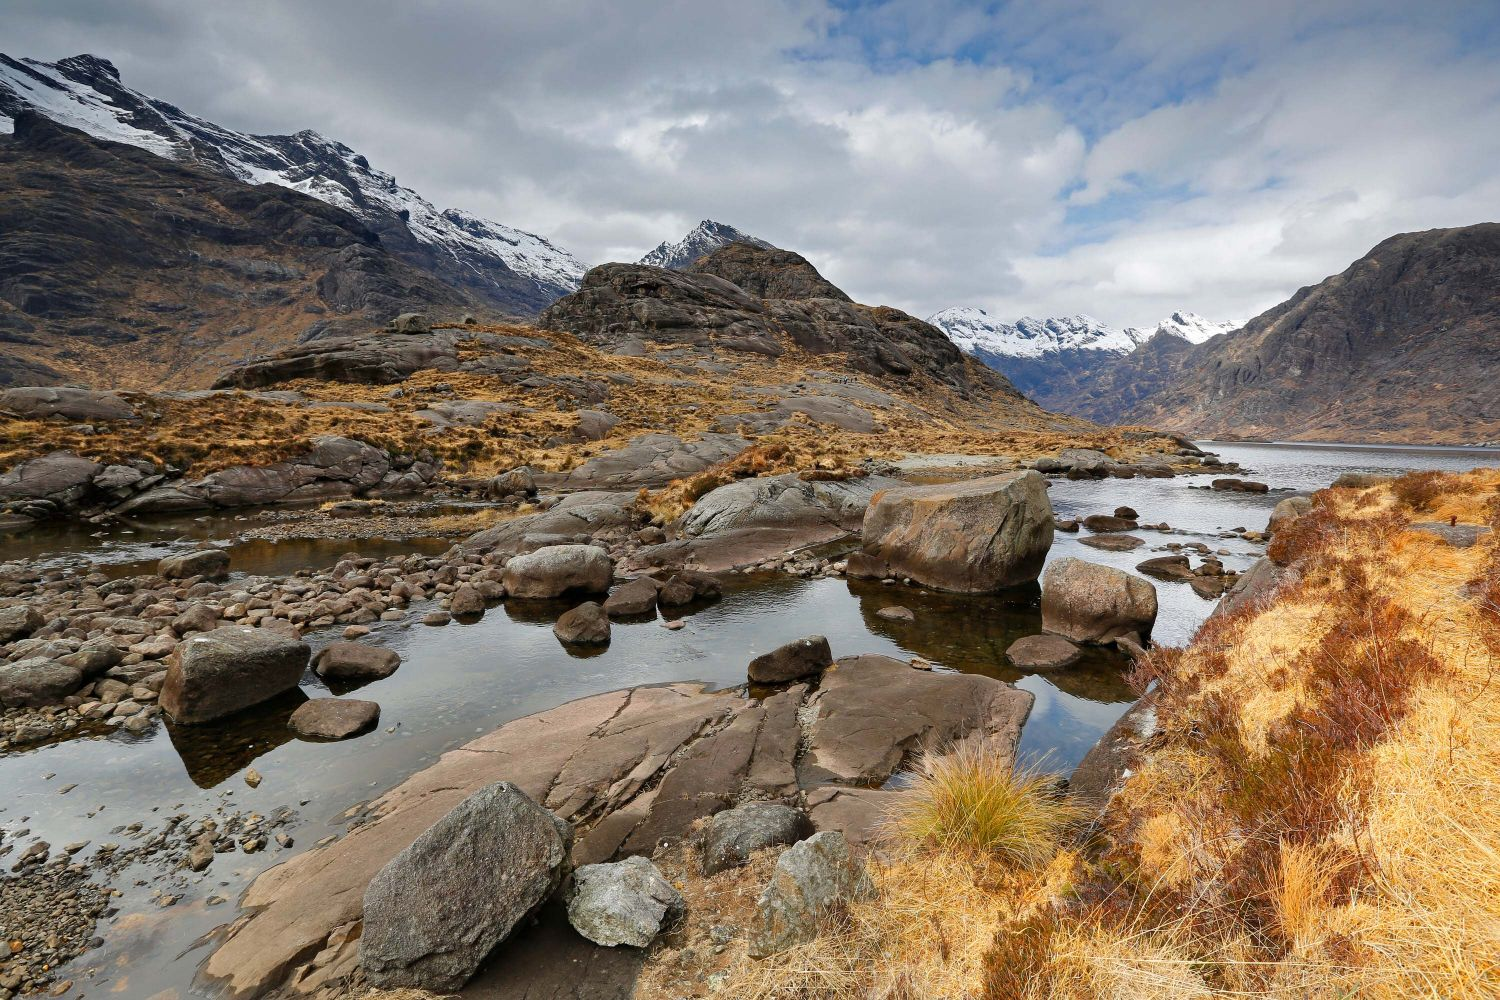 Loch Coruisk after taking a boat trip from Elgol